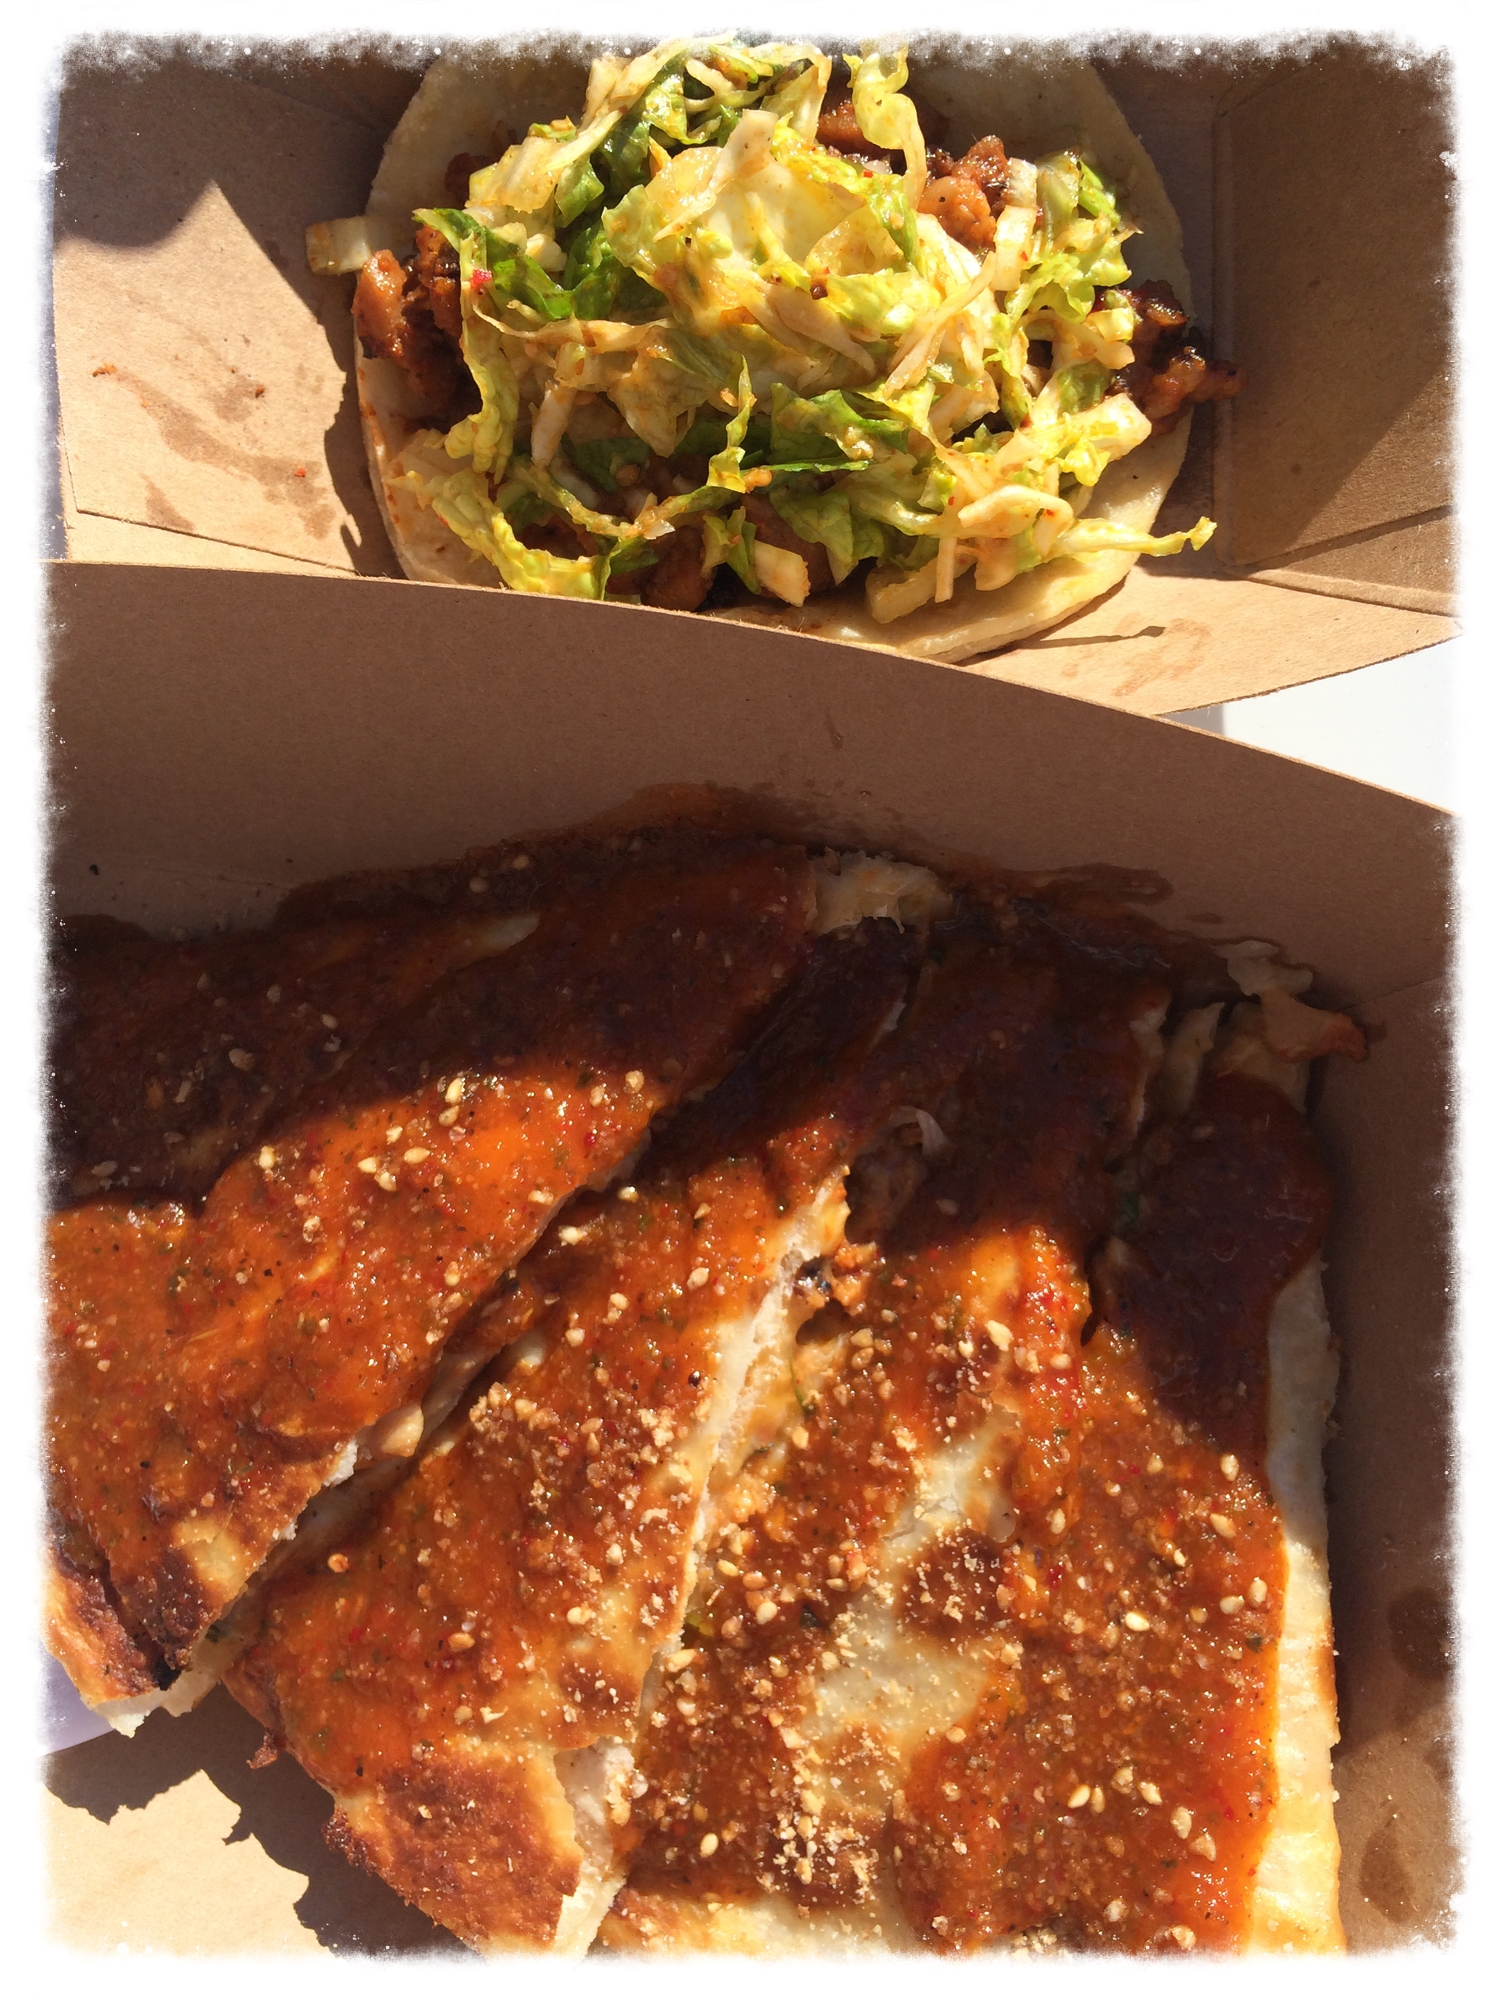 Kogi food truck delights